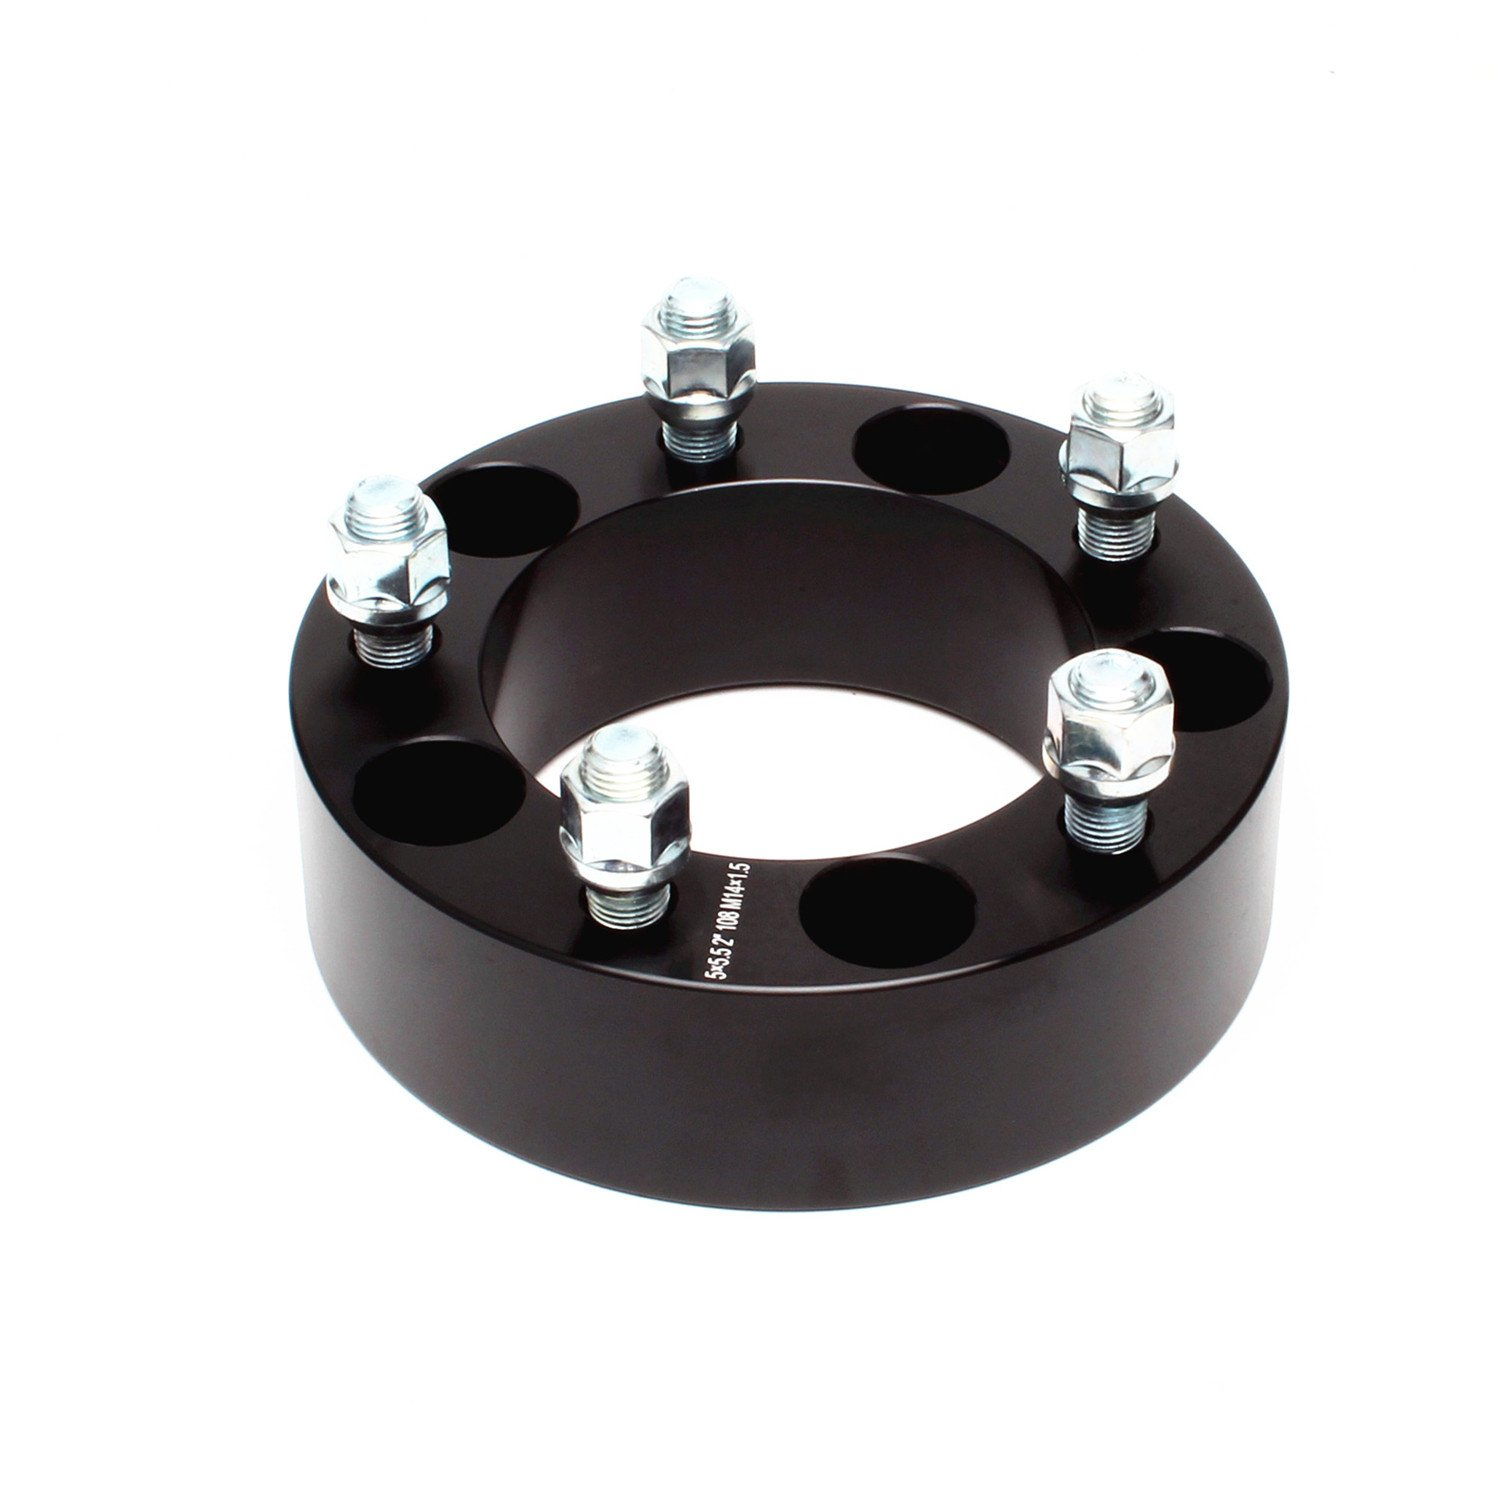 50mm Thick with 14x1.5 Studs 108MM Hub Bore for Dodge Ram 1500 2012-2018 Black APL-032BK 4pcs 5x5.5 to 5x5.5 Bolt Pattern Hubcentric Wheel Spacers 2